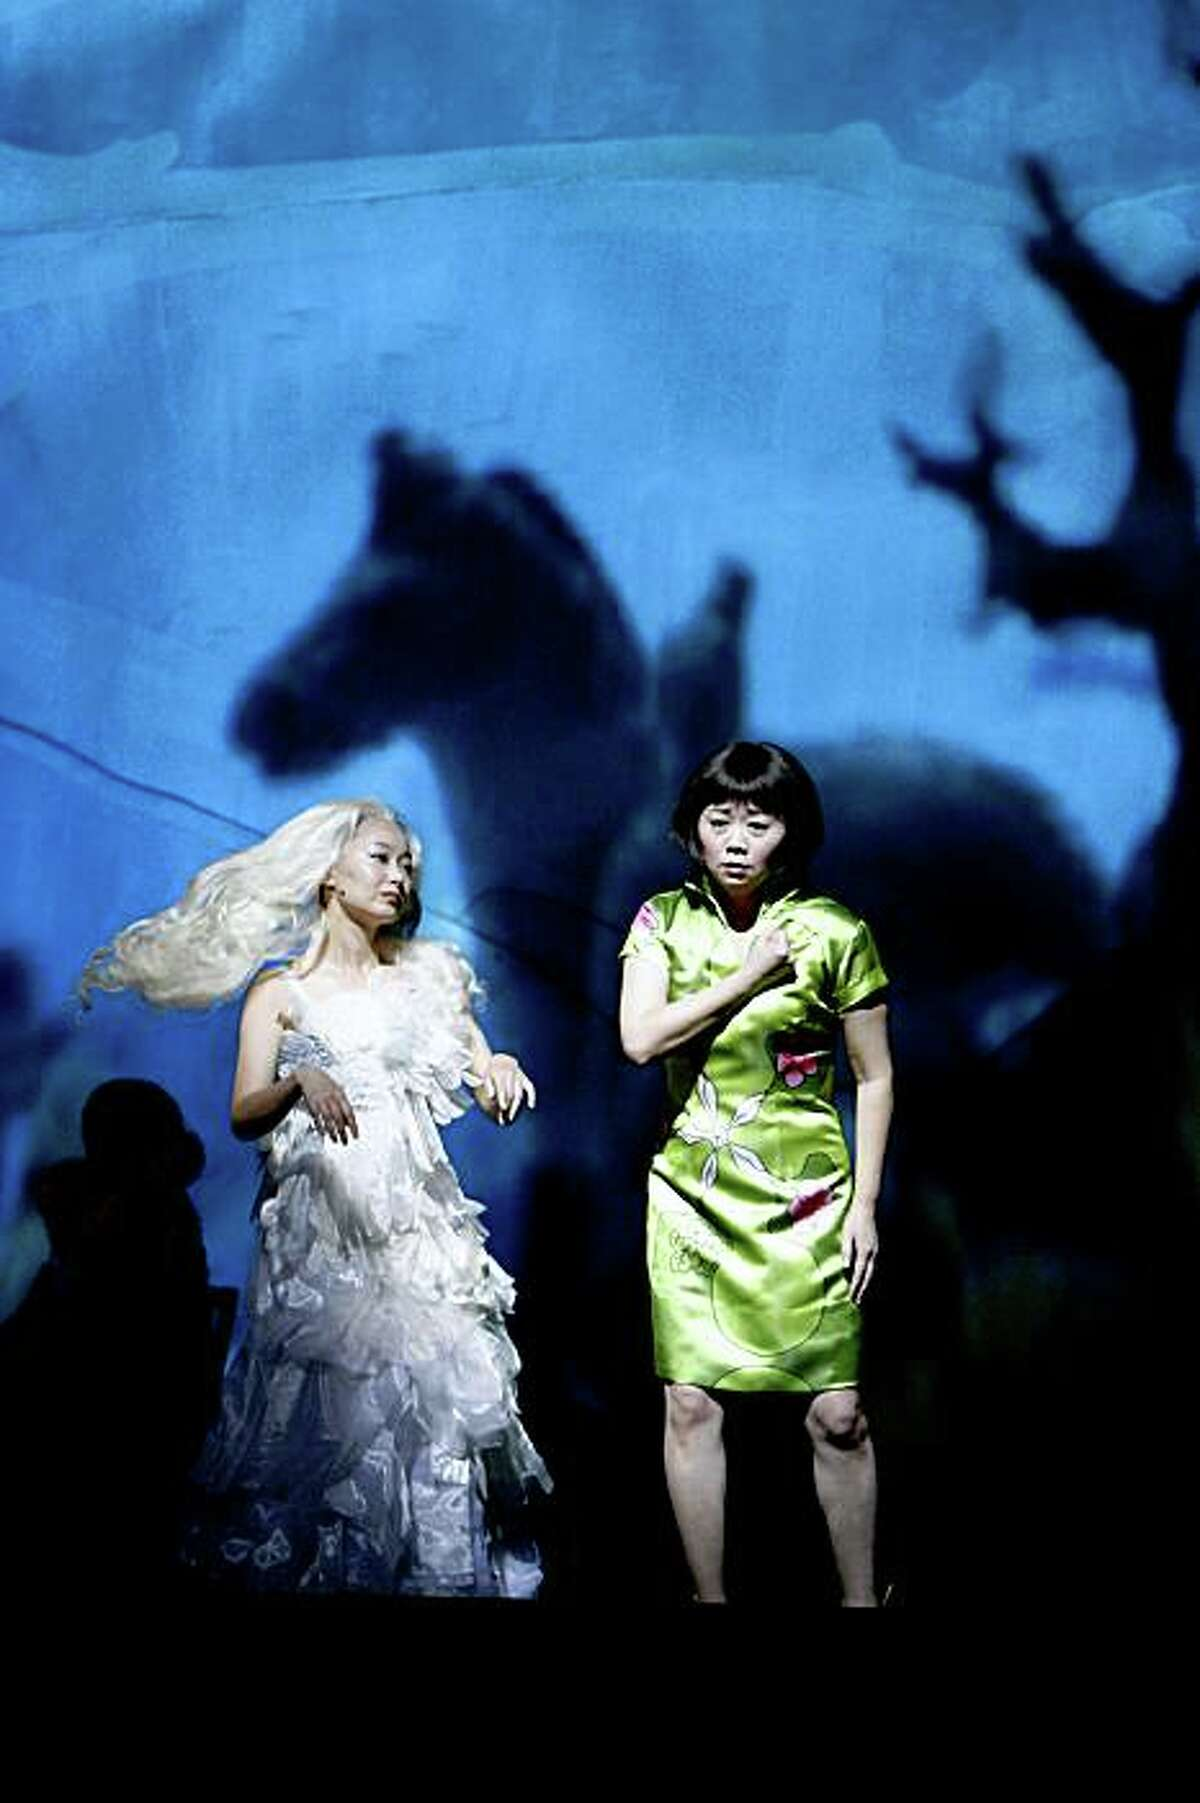 Precious Auntie, played by Qian Yi, left, and Ruth Young Kamen, played by Zheng Cao, right, at the dress rehearsal of SF Opera's world premier of the opera based on the Amy Tan novel